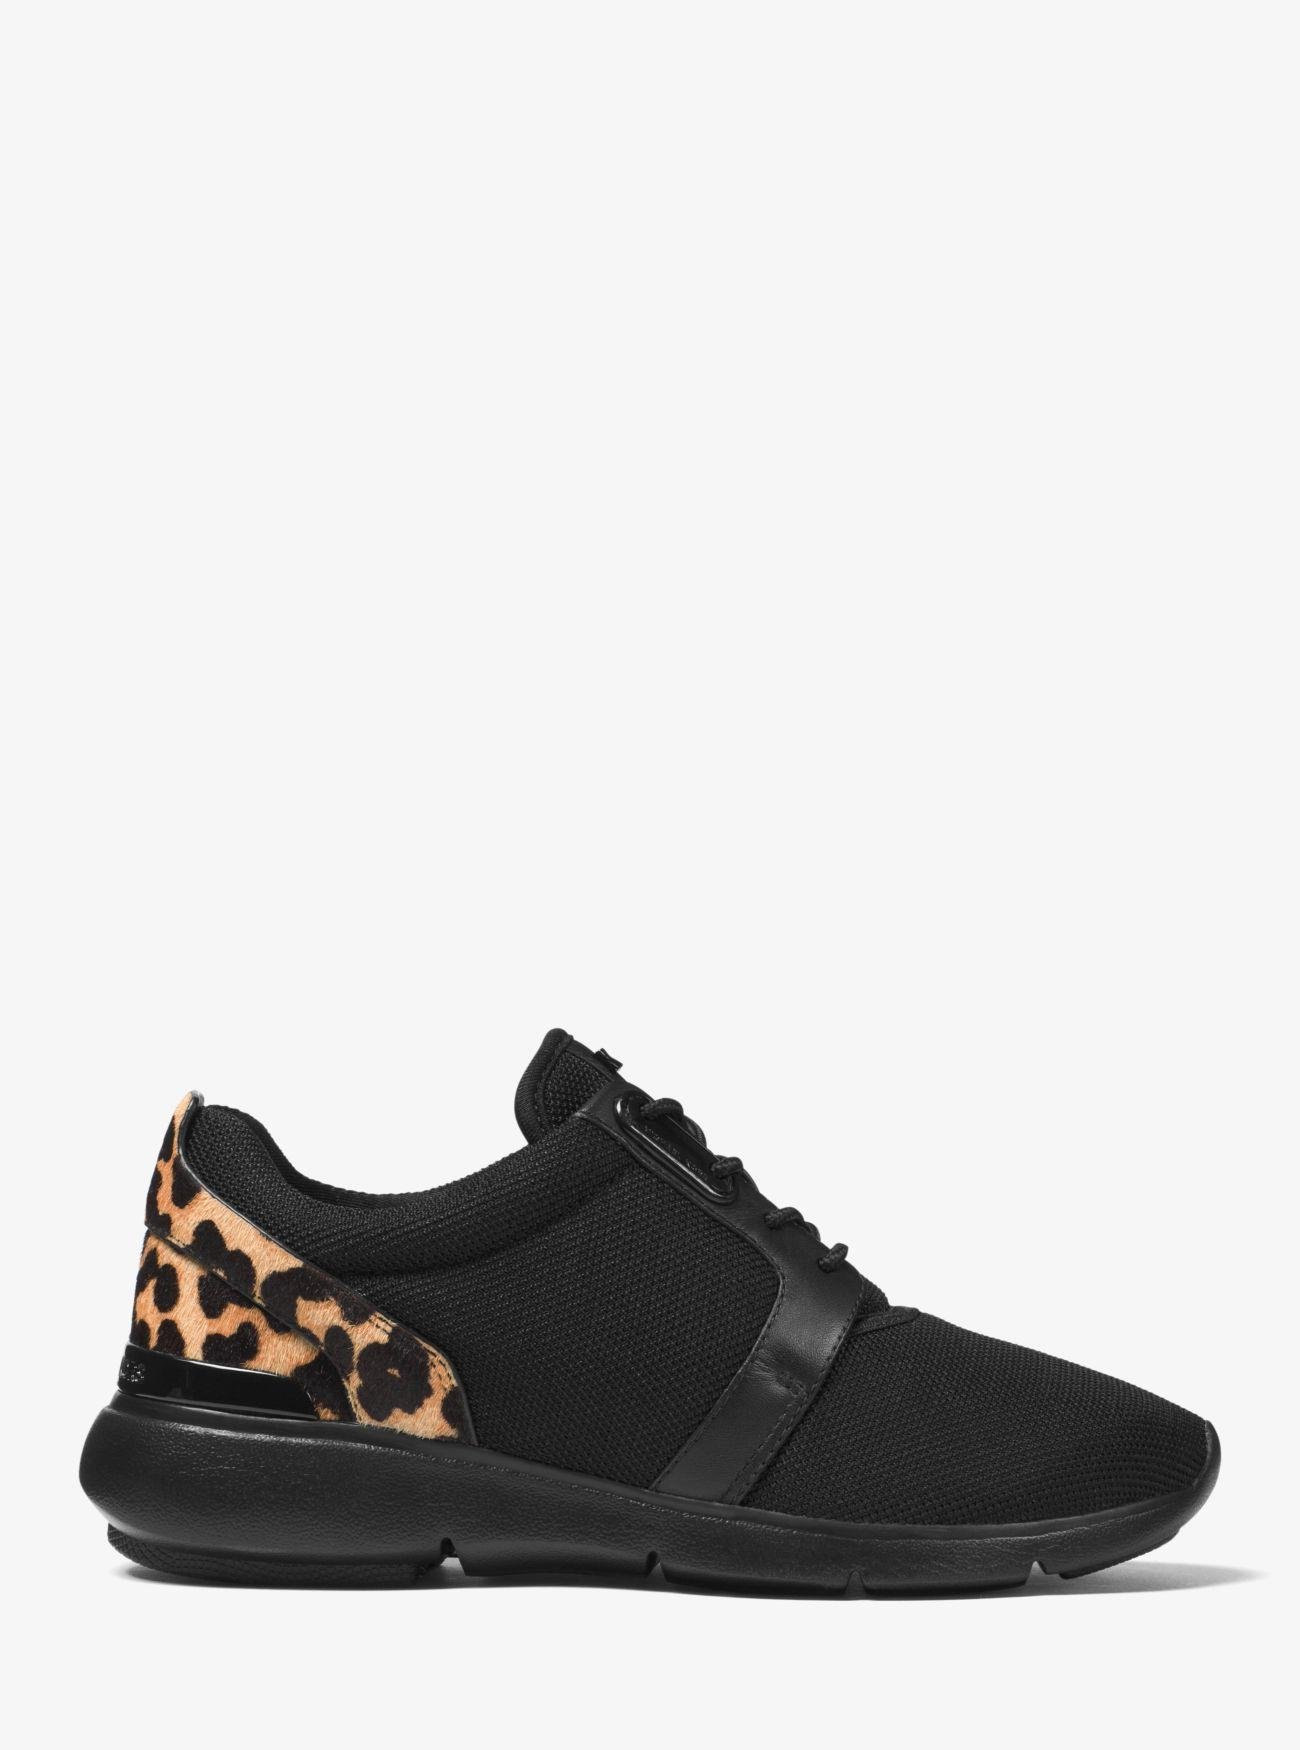 Michael Kors Rubber Amanda Leopard Calf Hair And Mesh Sneaker in Black/Natural (Black)